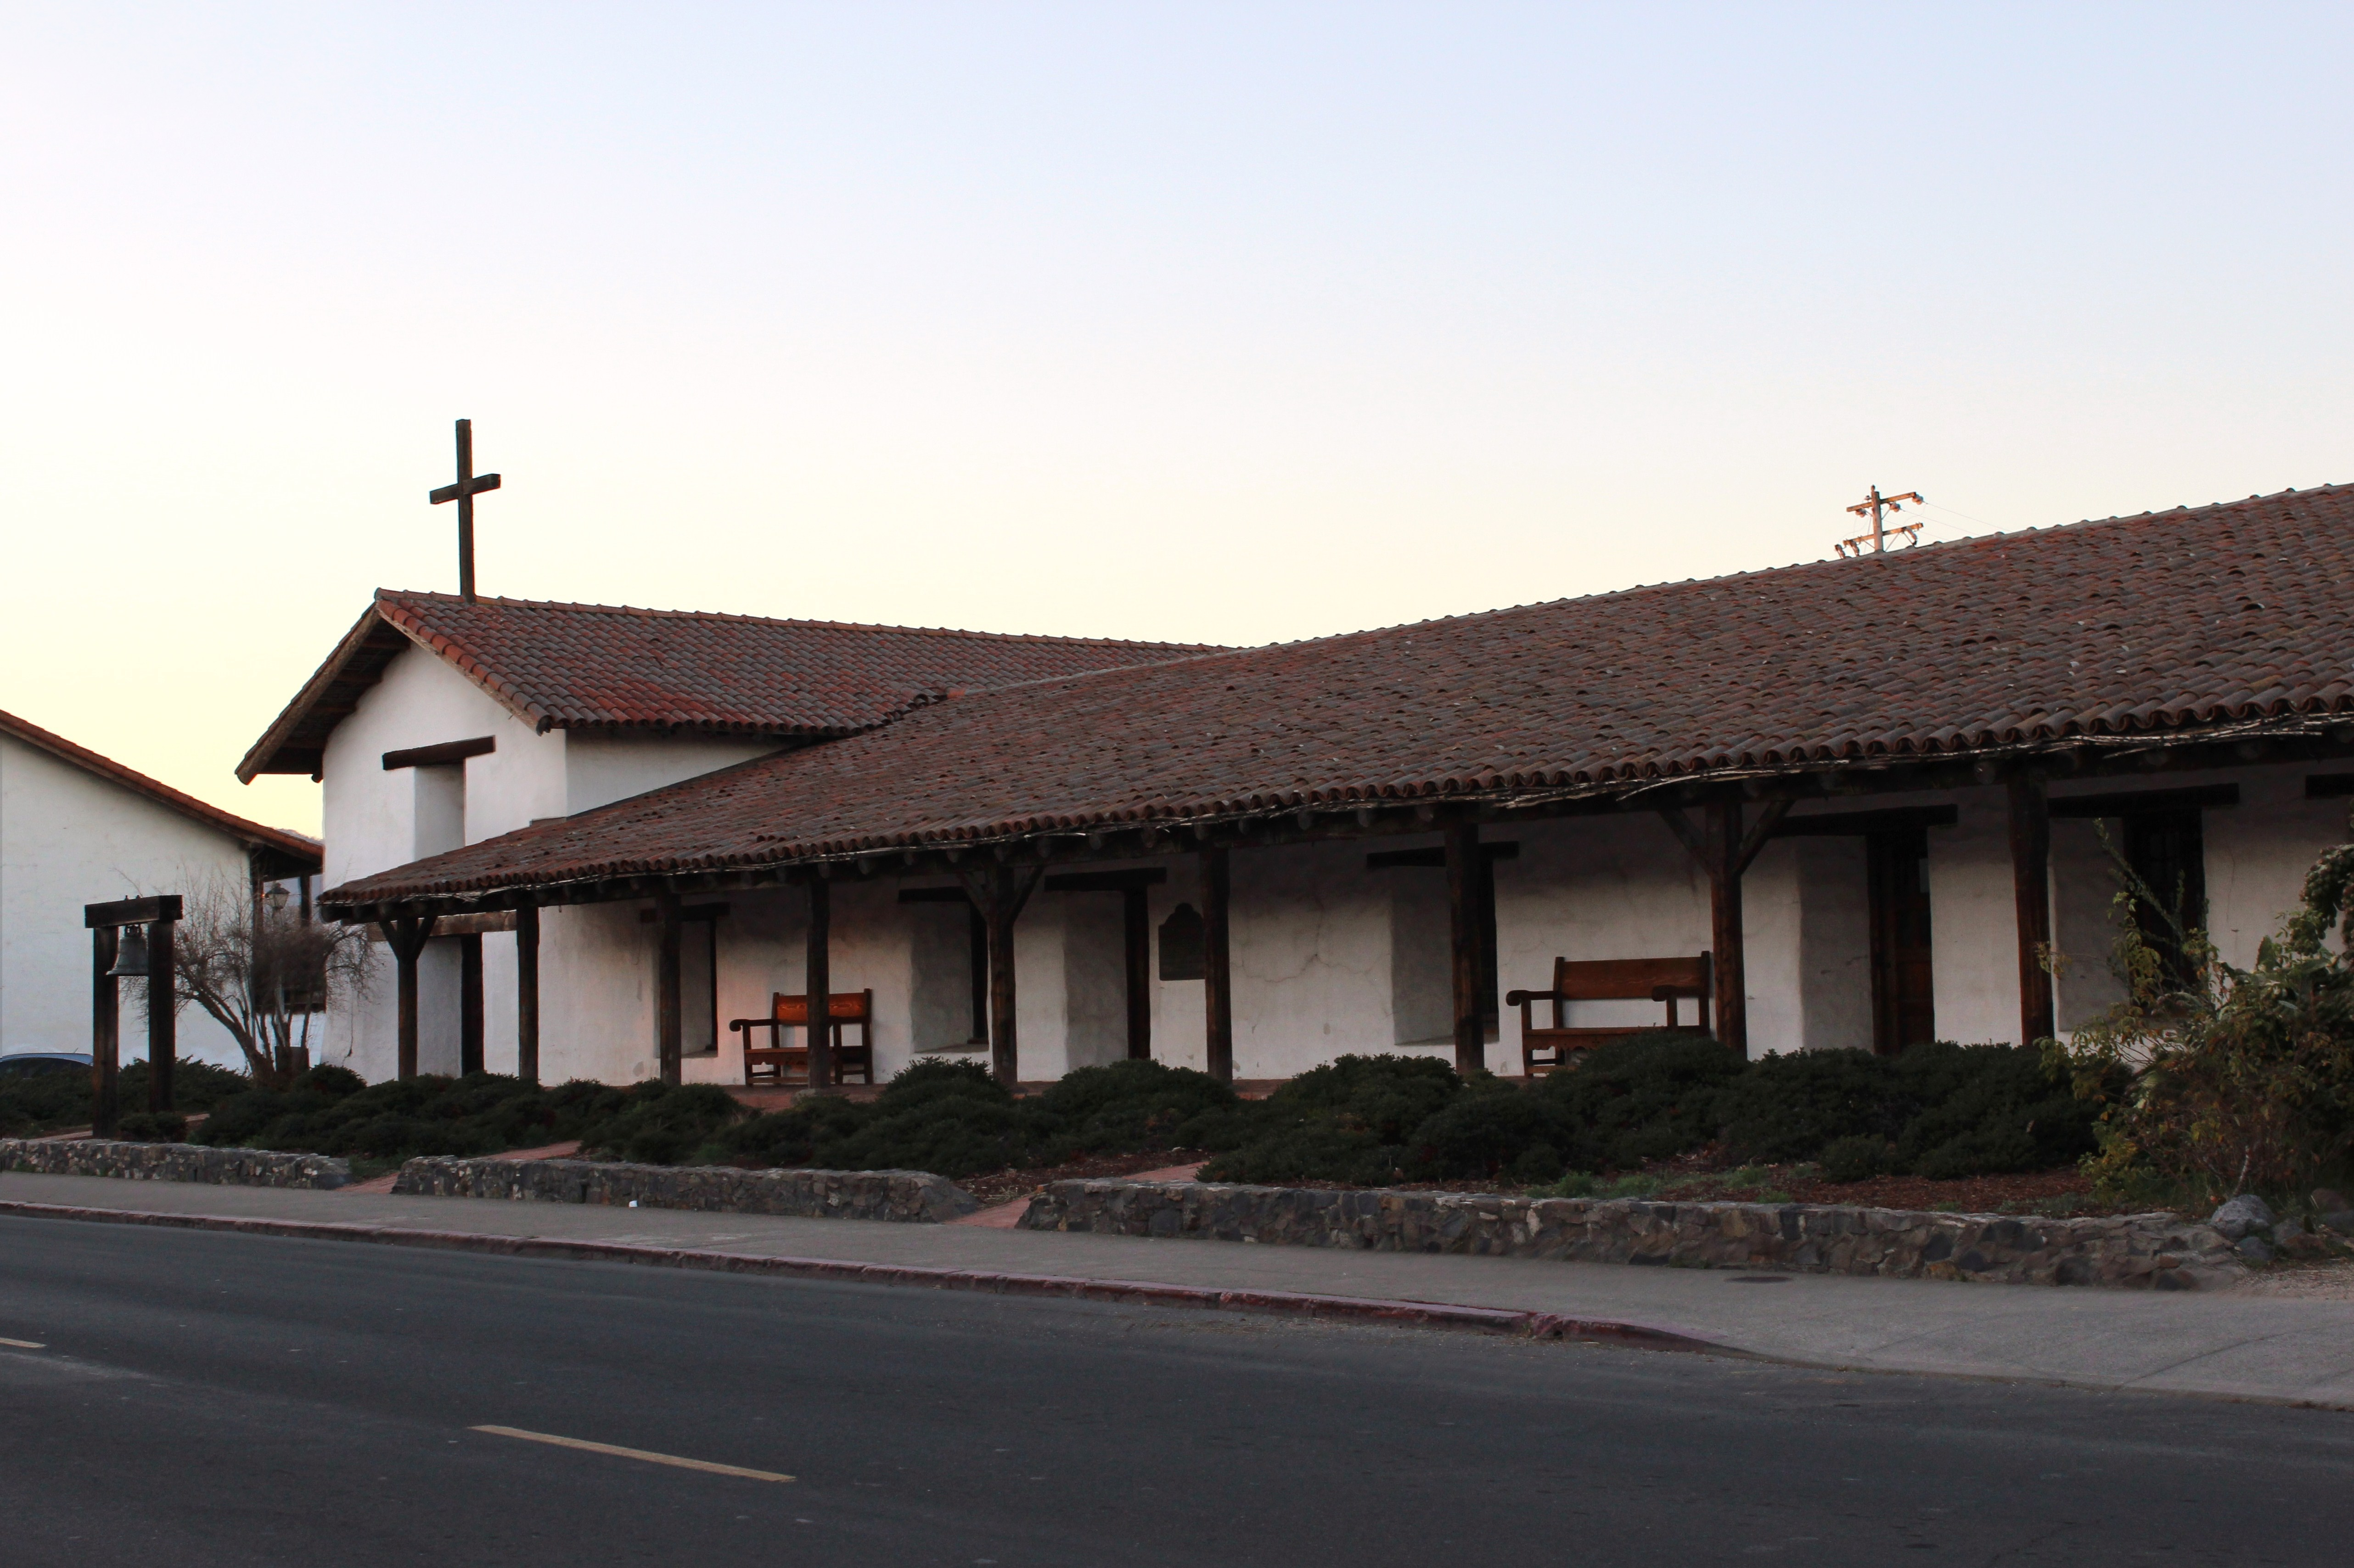 What services are provided by Mission San Francisco Solano?